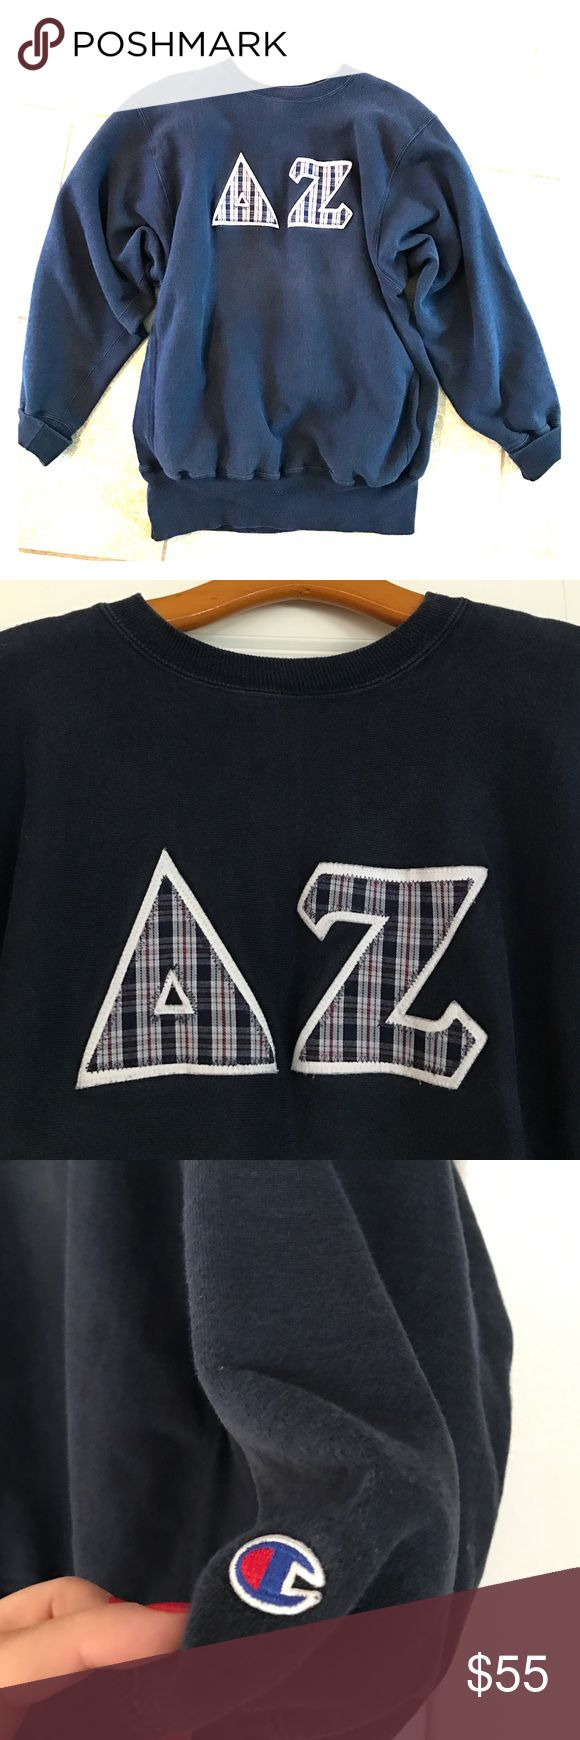 XL Cozy Delta Zeta DZ Hoodie! Over sized, comfy. Pre-owned. No major flaws.  Letters are navy blue, red, and white. Champion Tops Sweatshirts & Hoodies